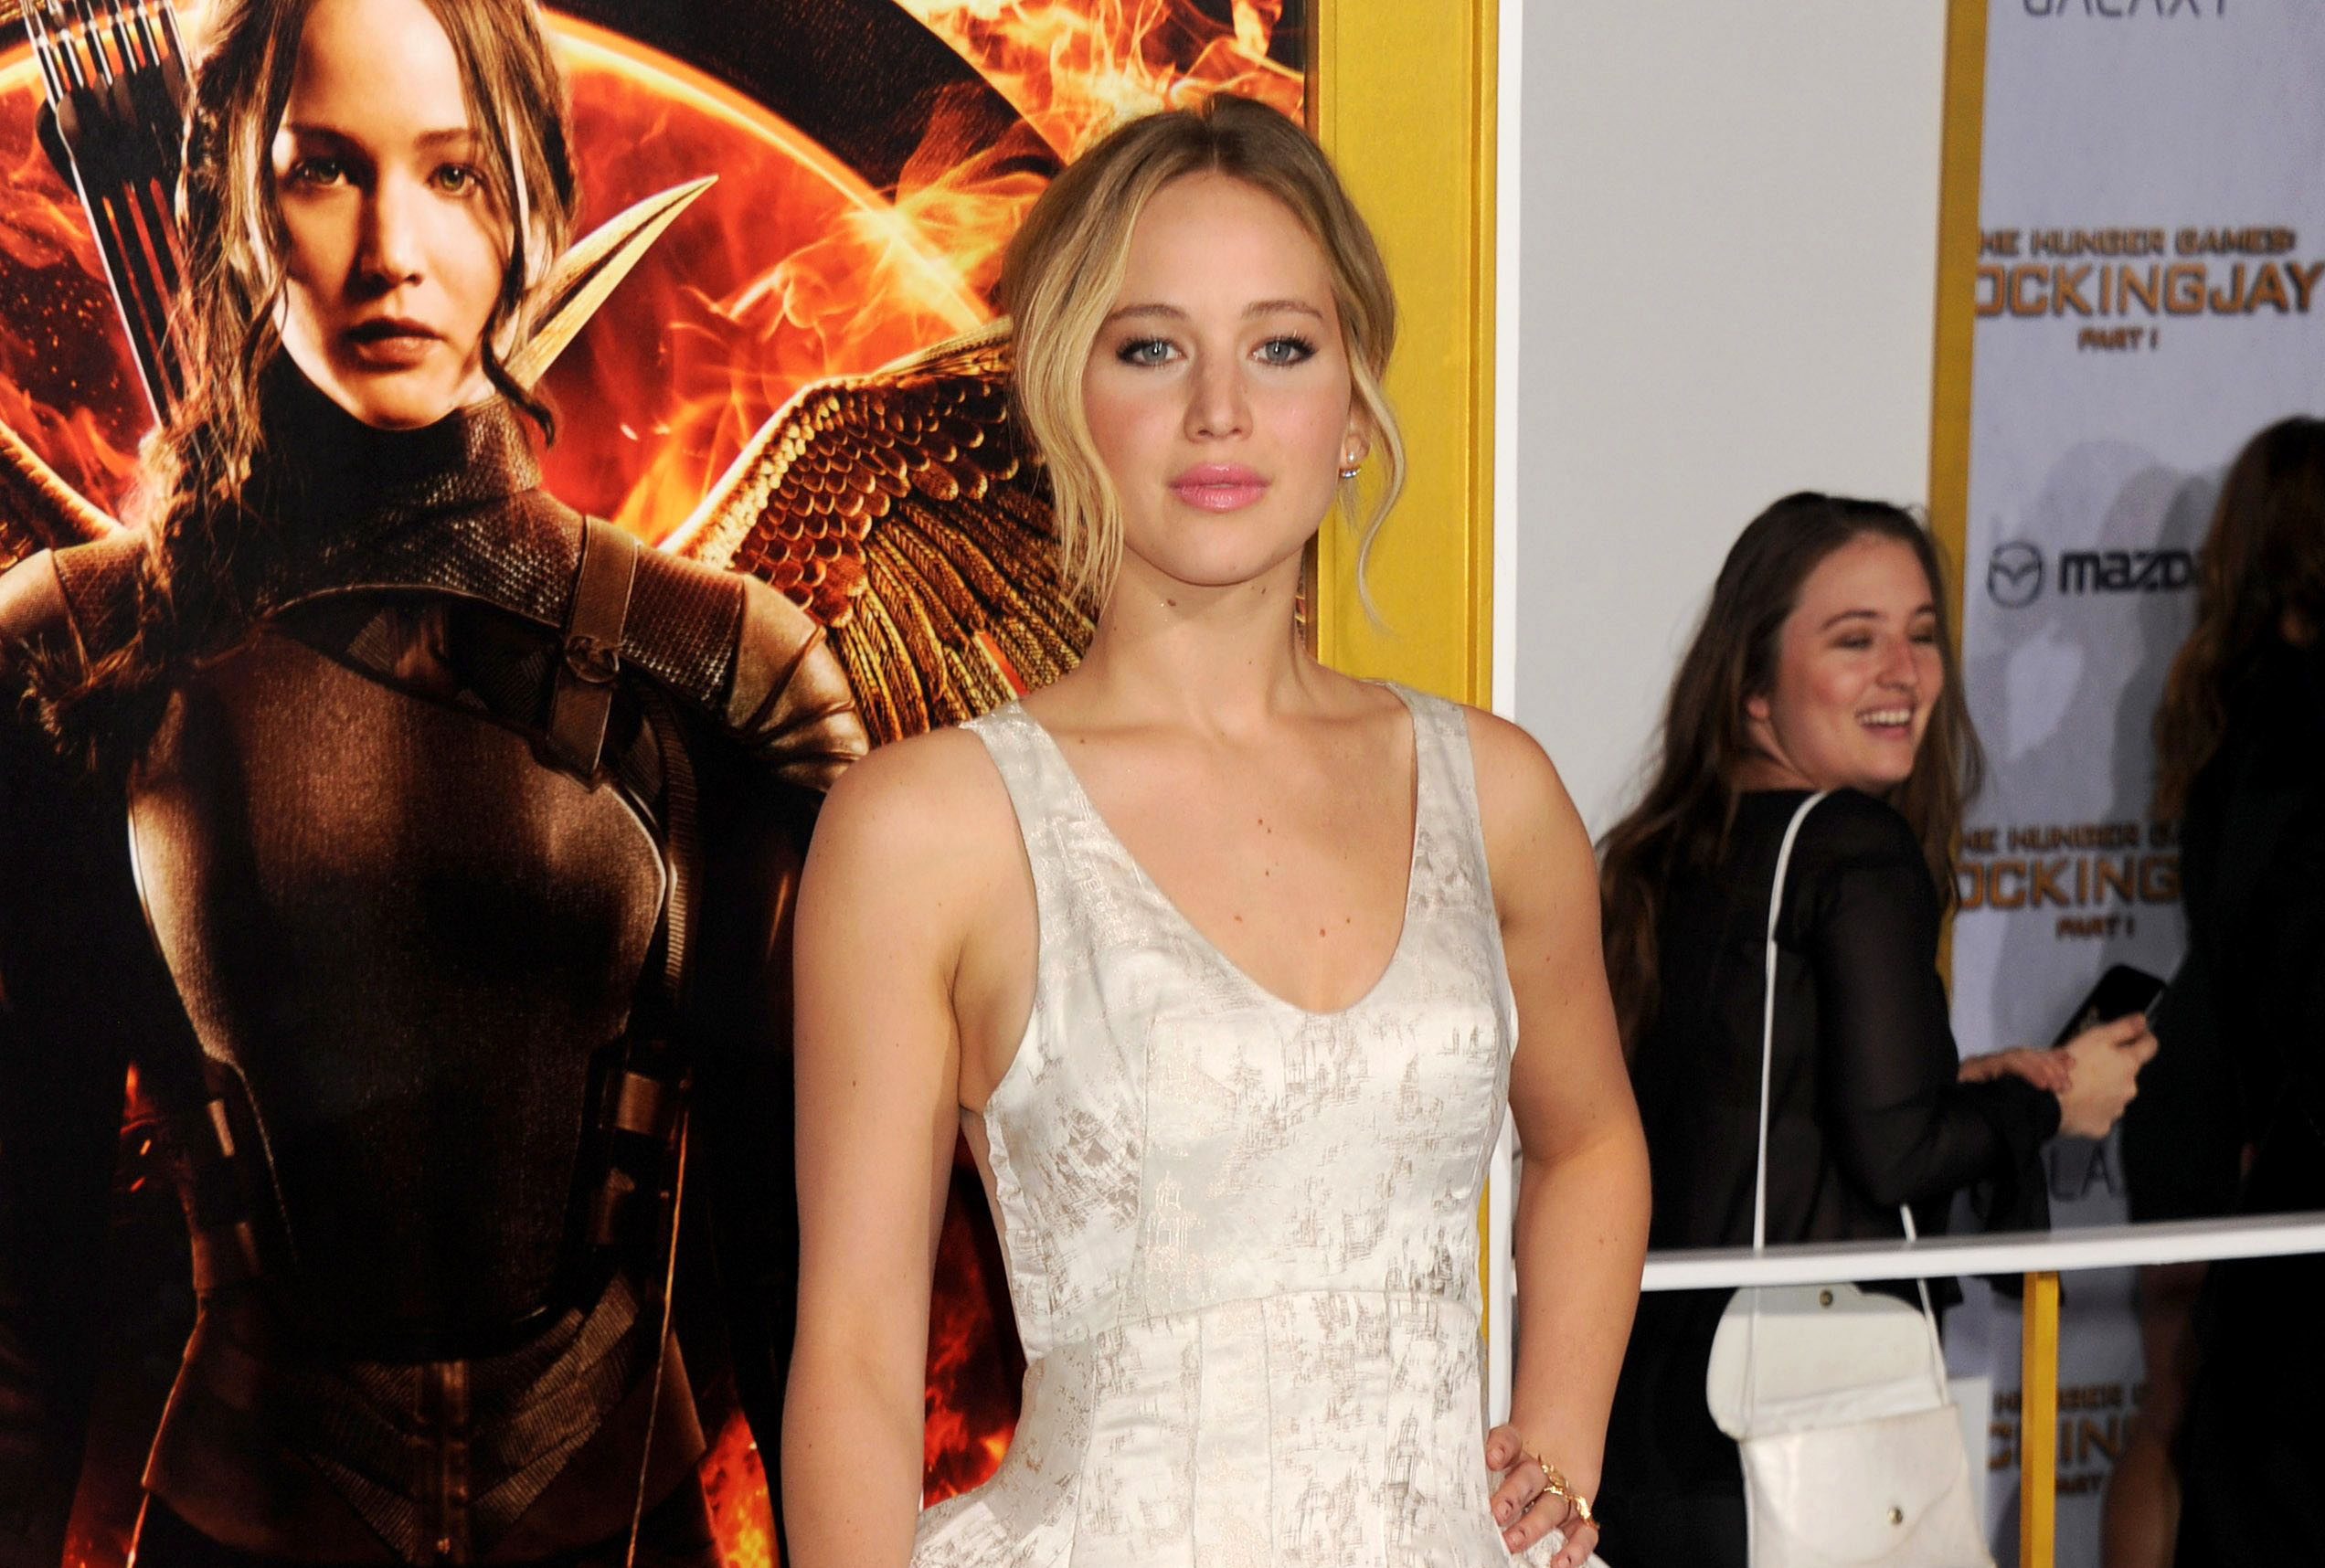 'The Hunger Games: Mockingjay Part 1' film premiere, Los Angeles, America - 17 Nov 2014